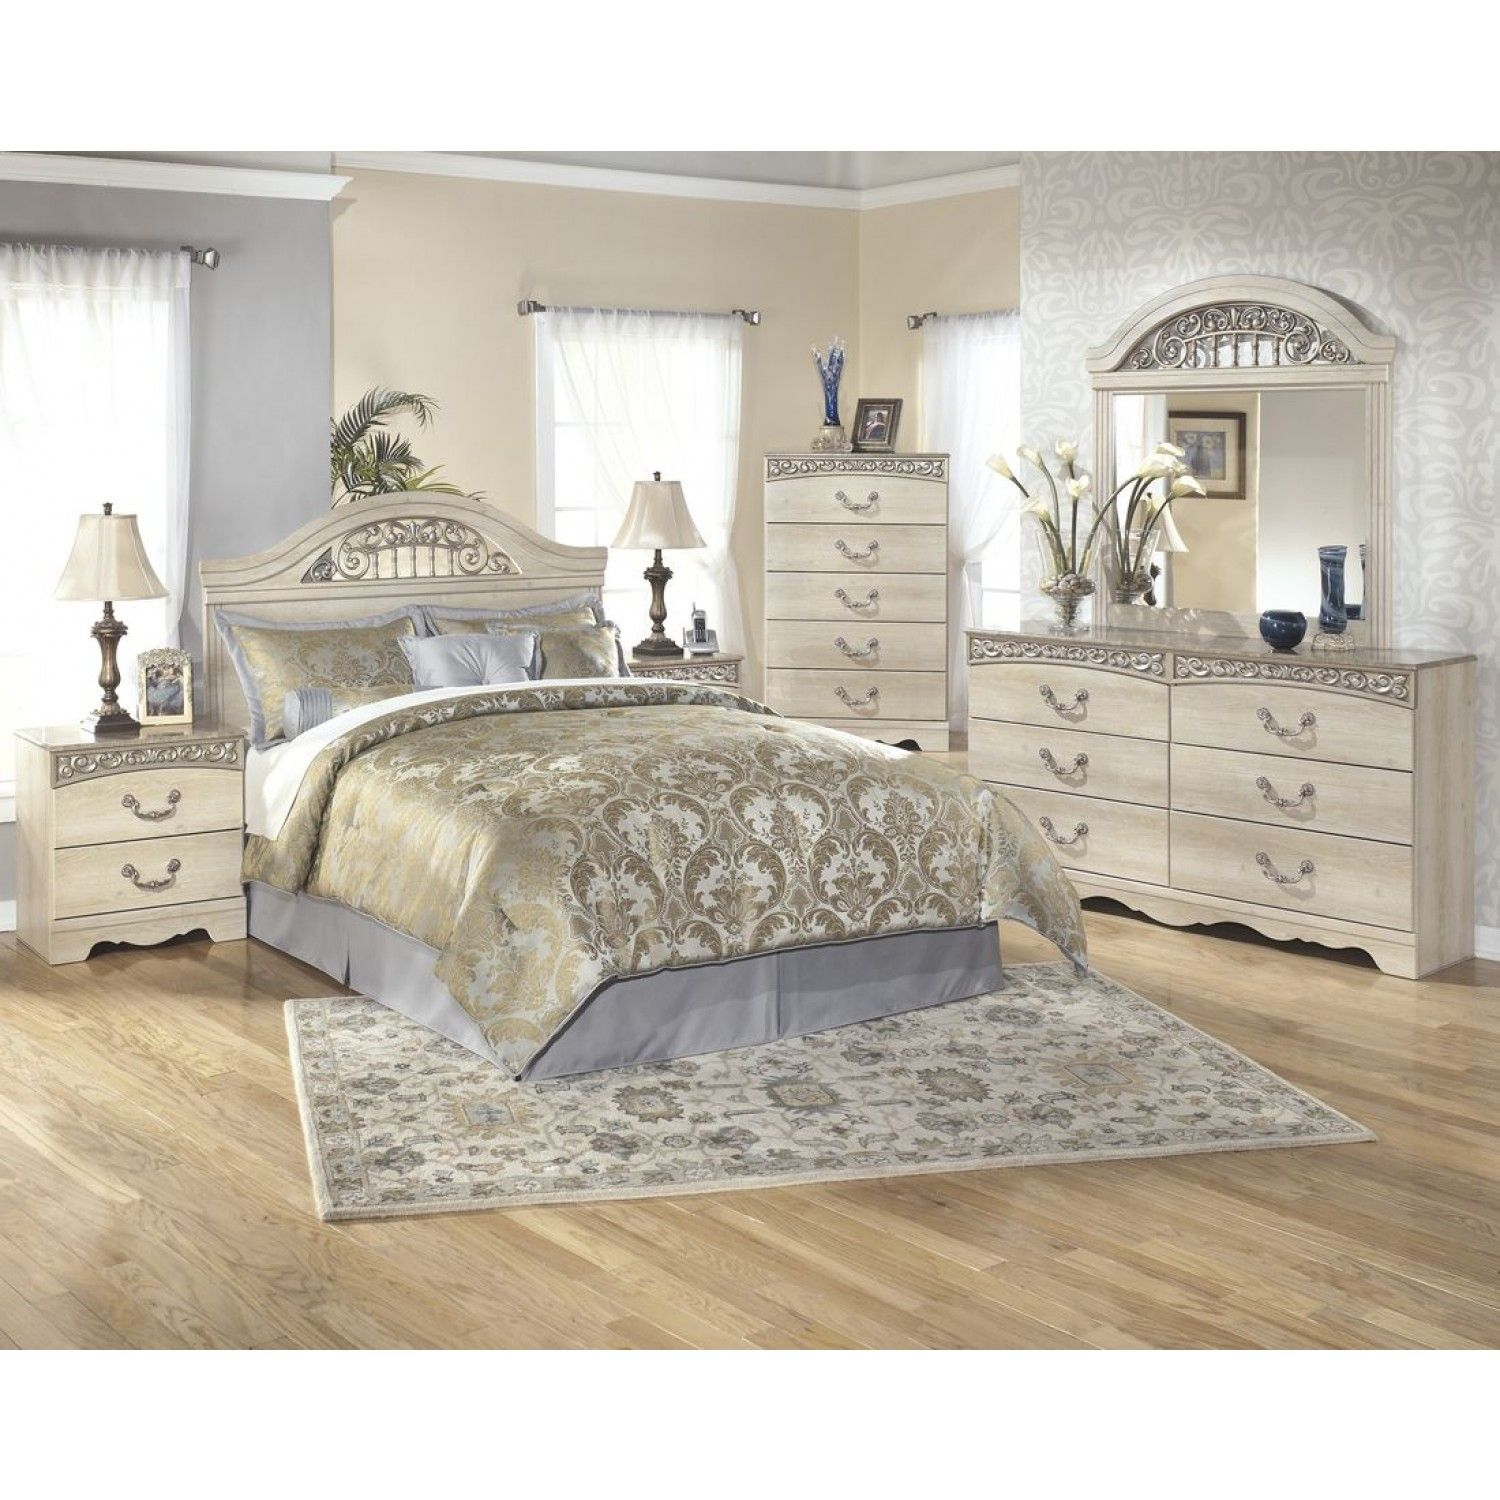 clothes buy floor of remodel furniture the with chest white ashley best on kids dressers prentice drawers ideas no images bedroom dresser attractive glamorous amazing